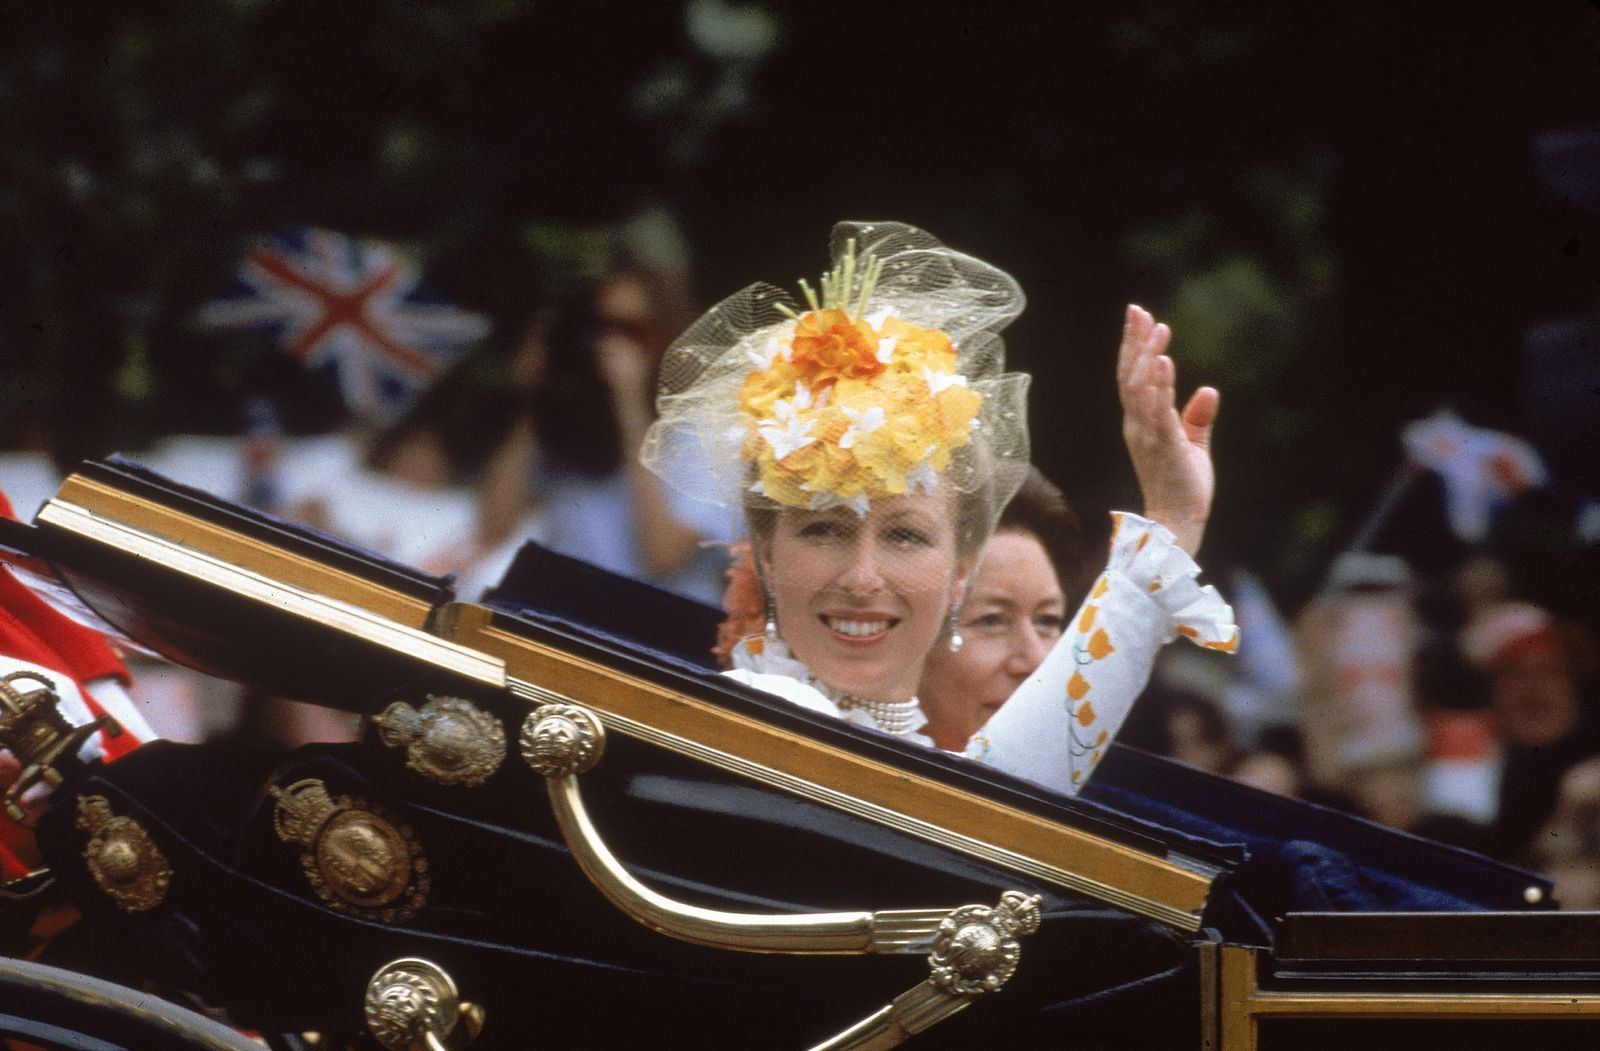 The Biggest and Best Royal Wedding Hats of All Time